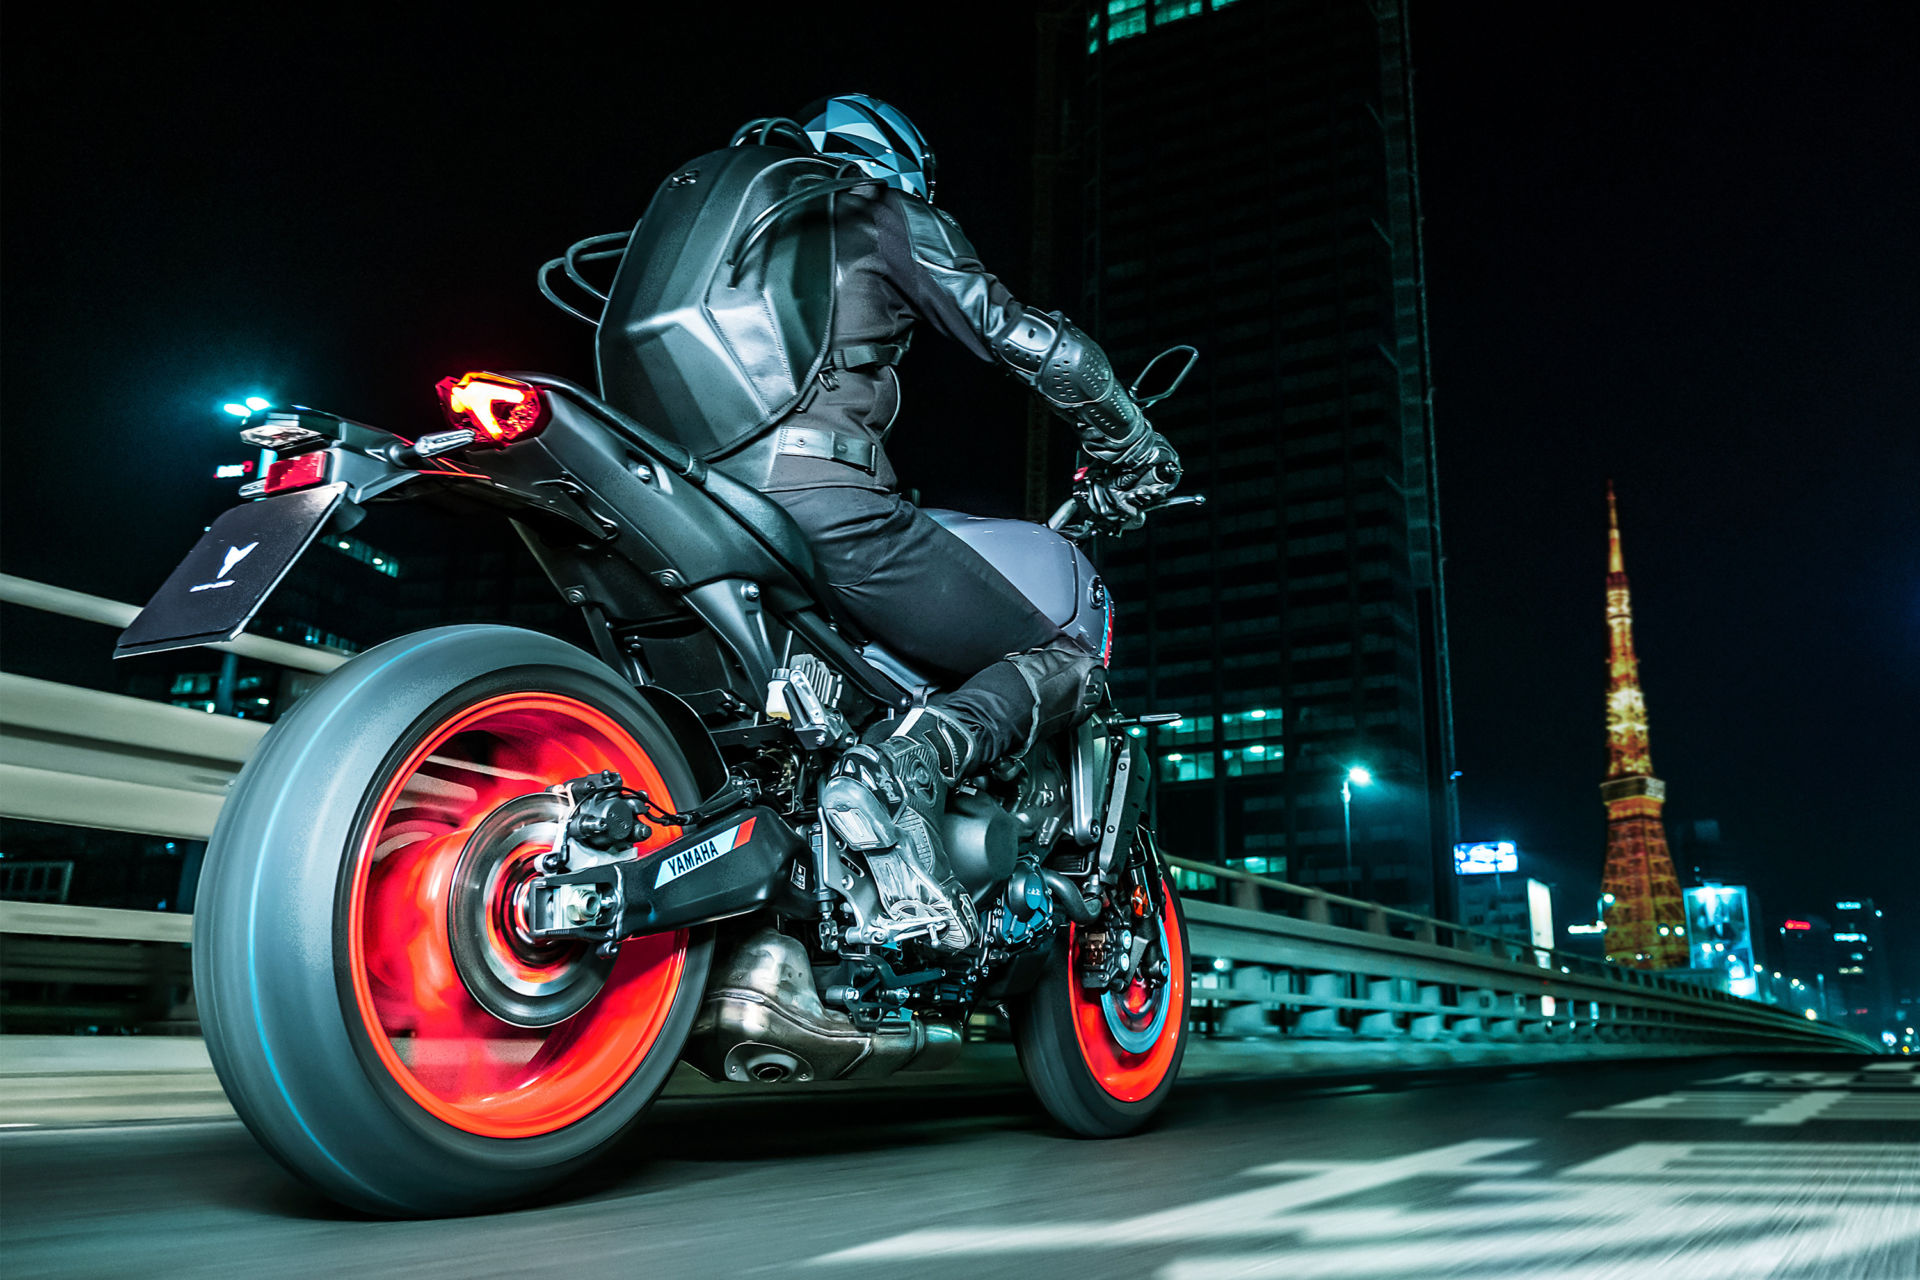 A 2021-model Yamaha MT-09. Photo courtesy Yamaha.